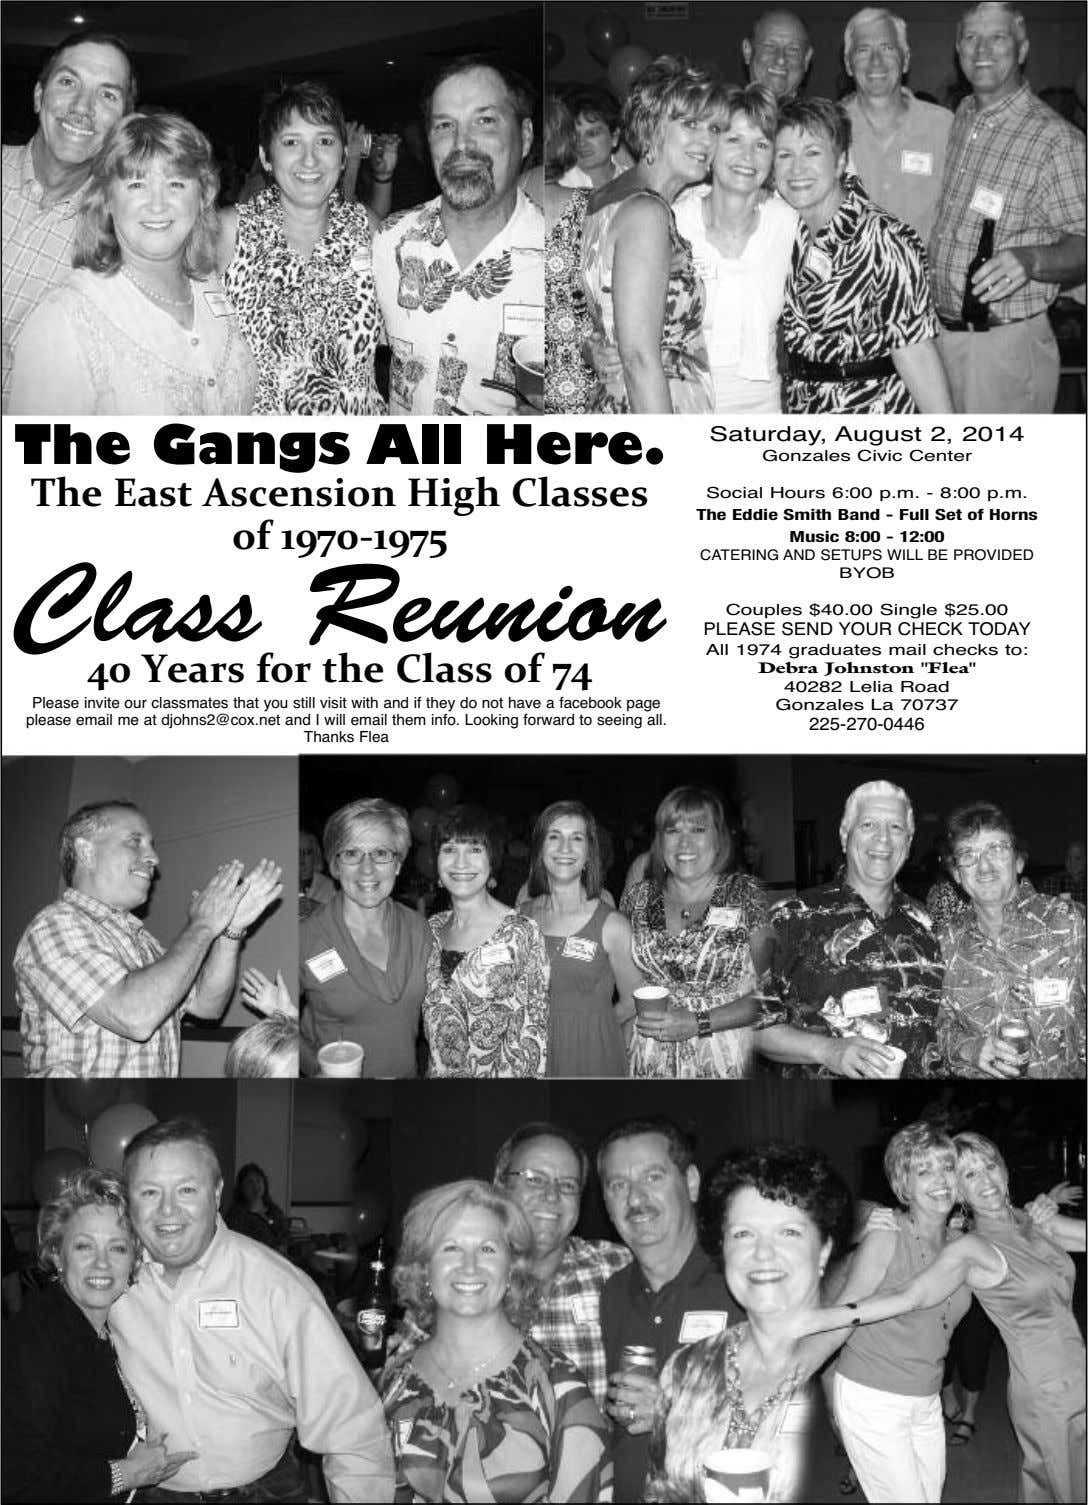 The Gangs All Here. Saturday, August 2, 2014 Gonzales Civic Center The East Ascension High